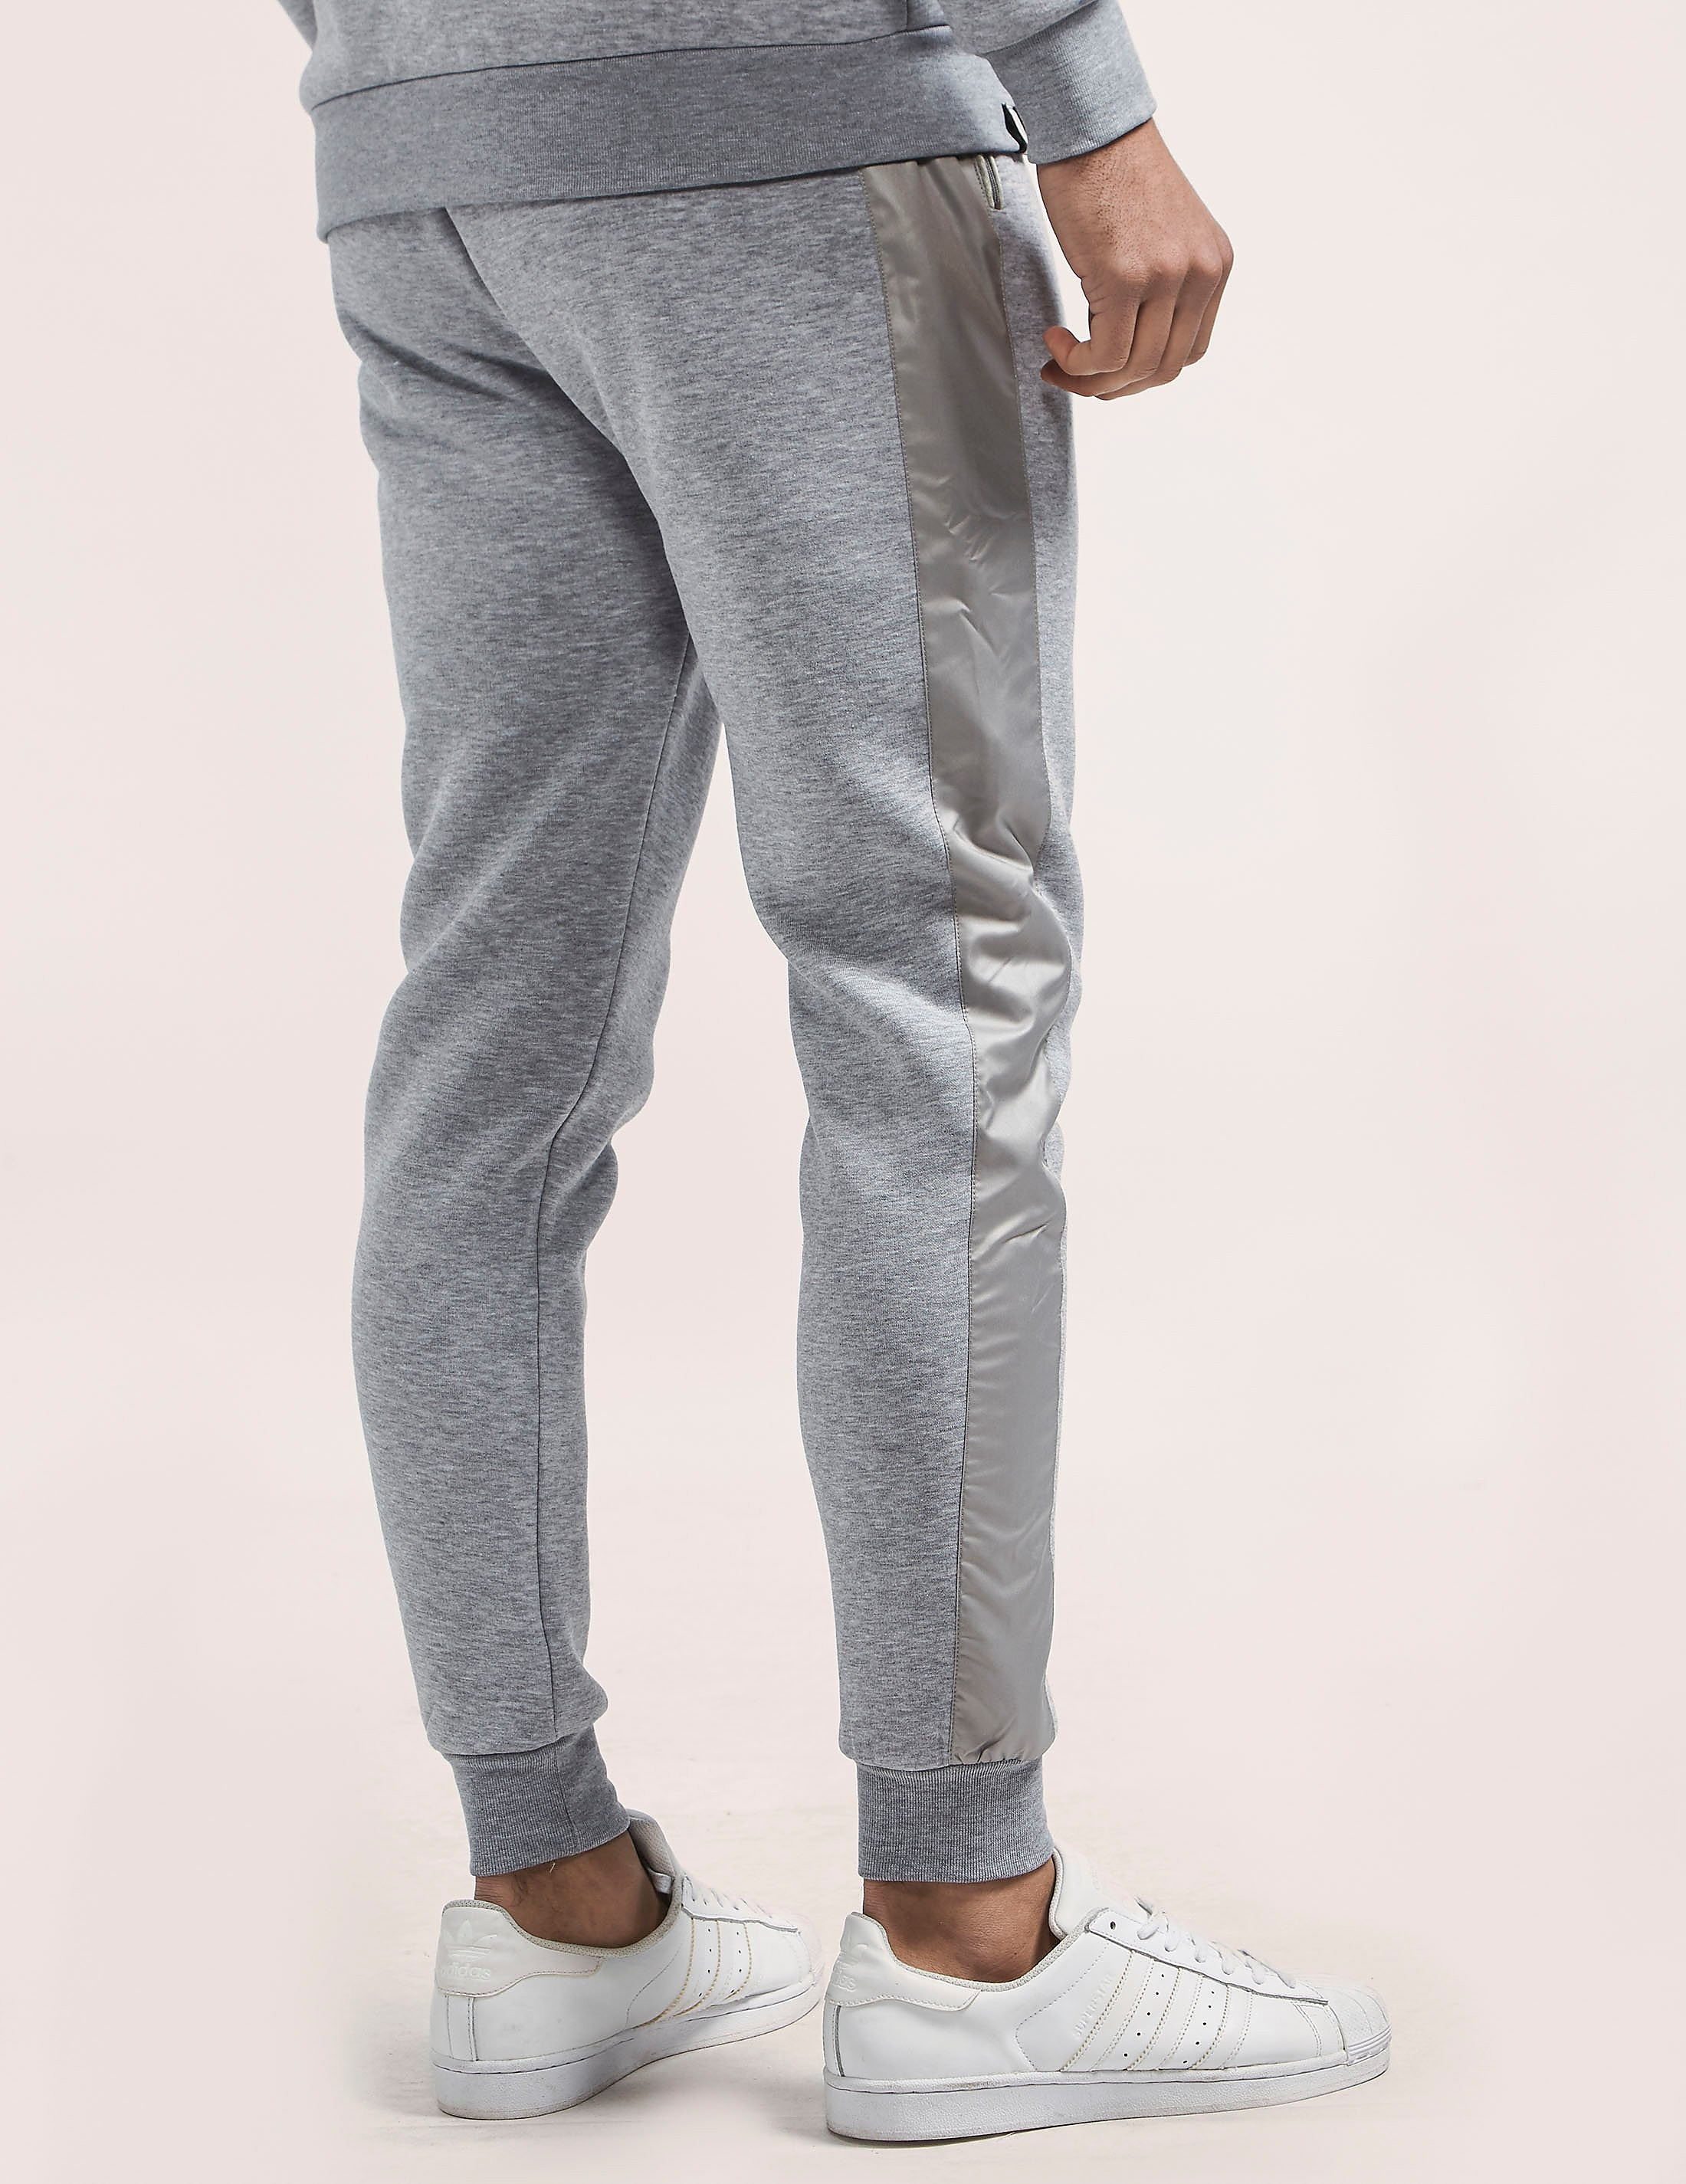 Intense Clothing Sandi Nylon Track Pants